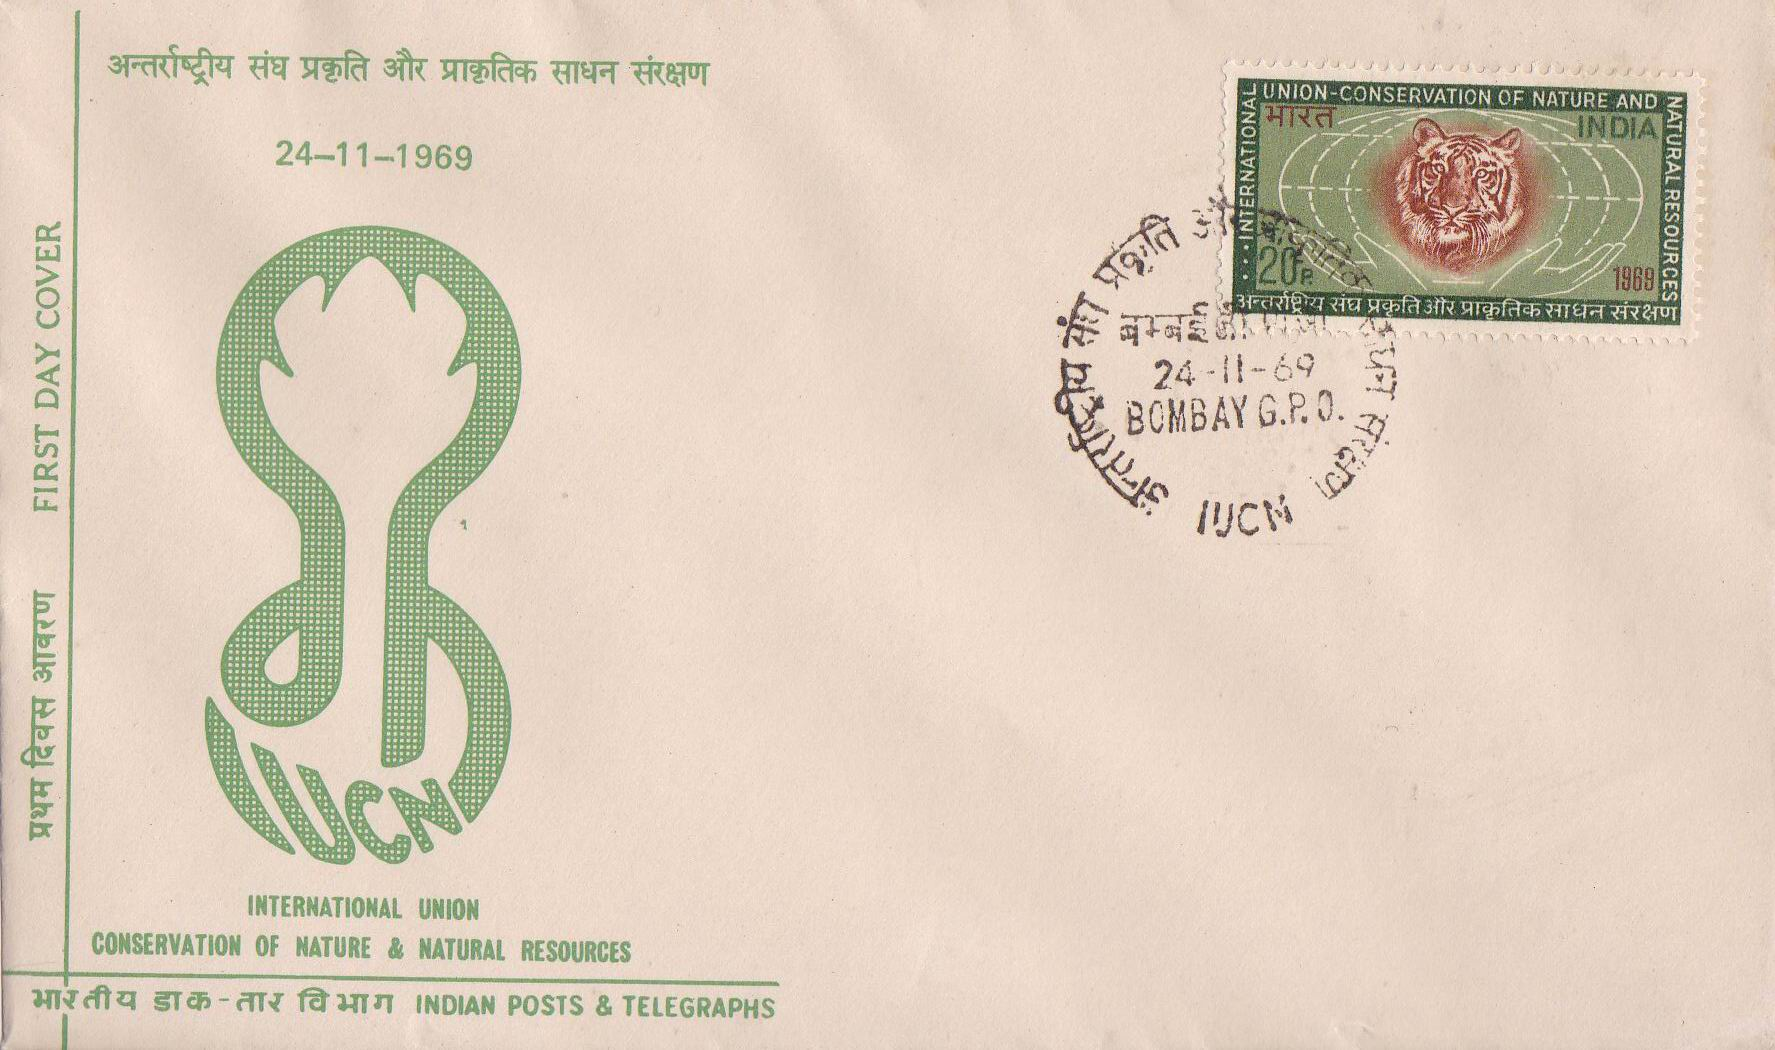 India 1969 Fdc & Stamp Conservation Of Nature Tiger